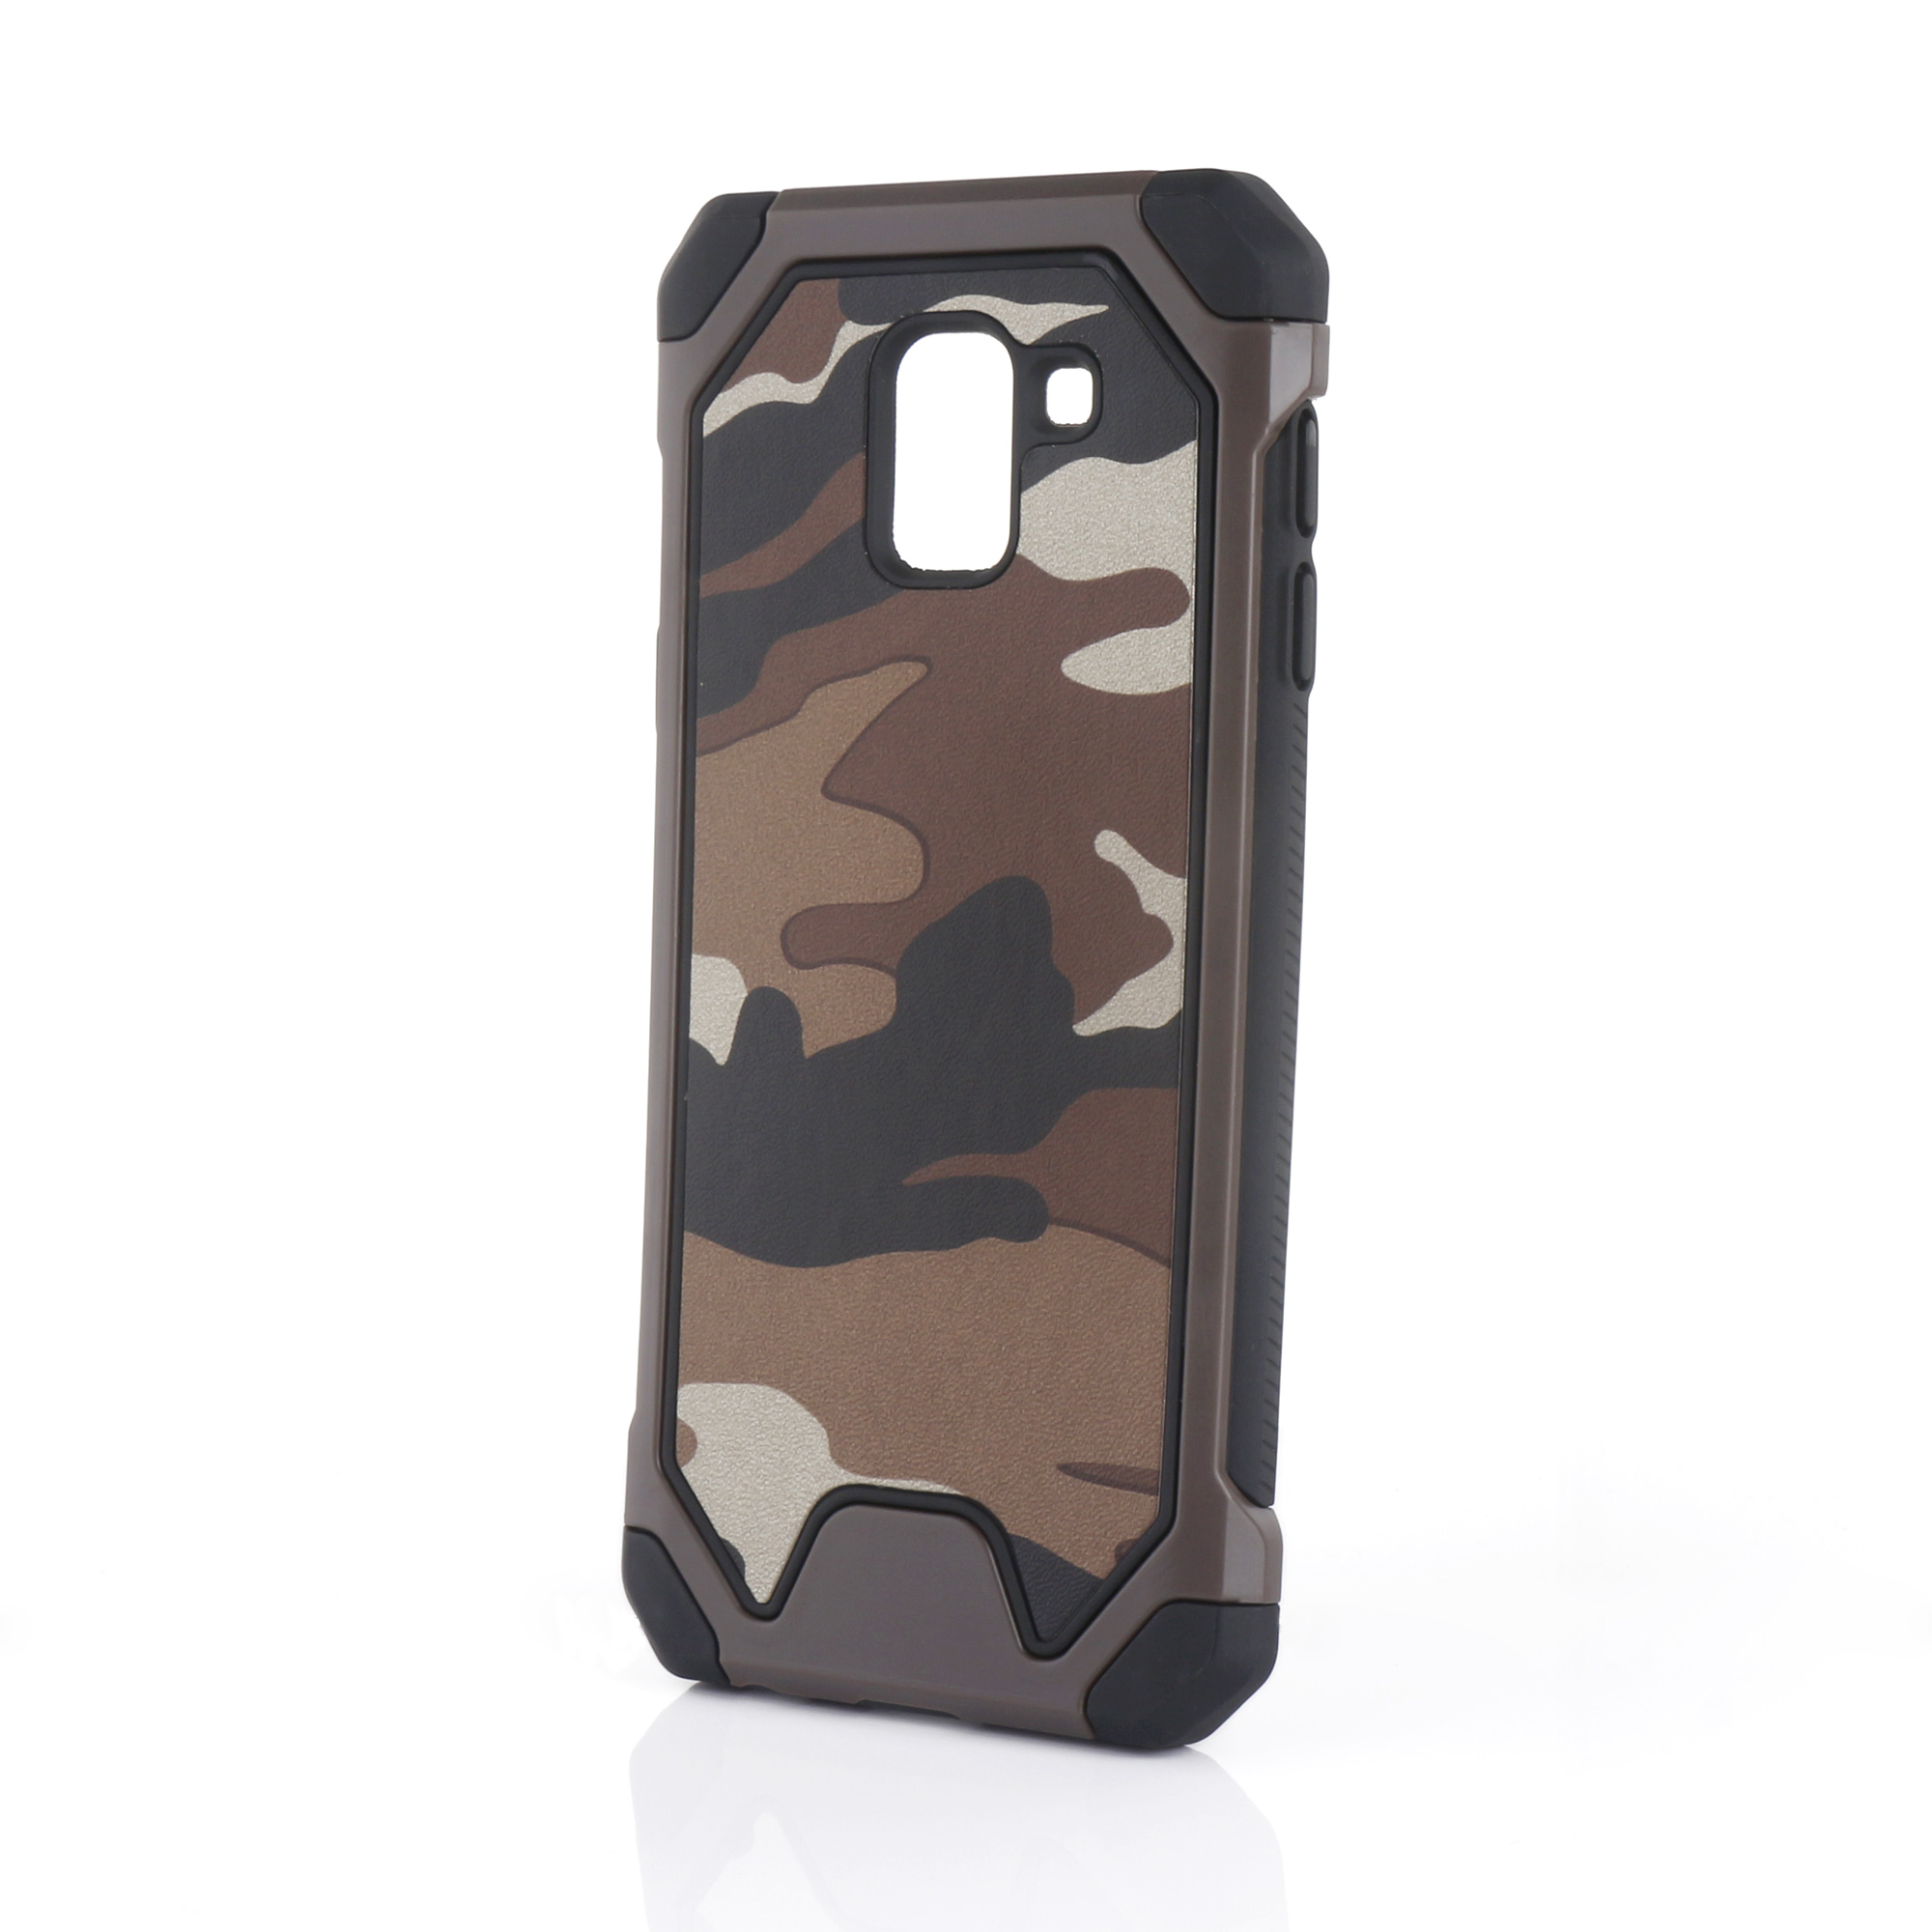 sports shoes d8176 57d99 Samsung Galaxy J4 Plus J6 Plus 2018 Note 5 Case Casing Cover Housing Army